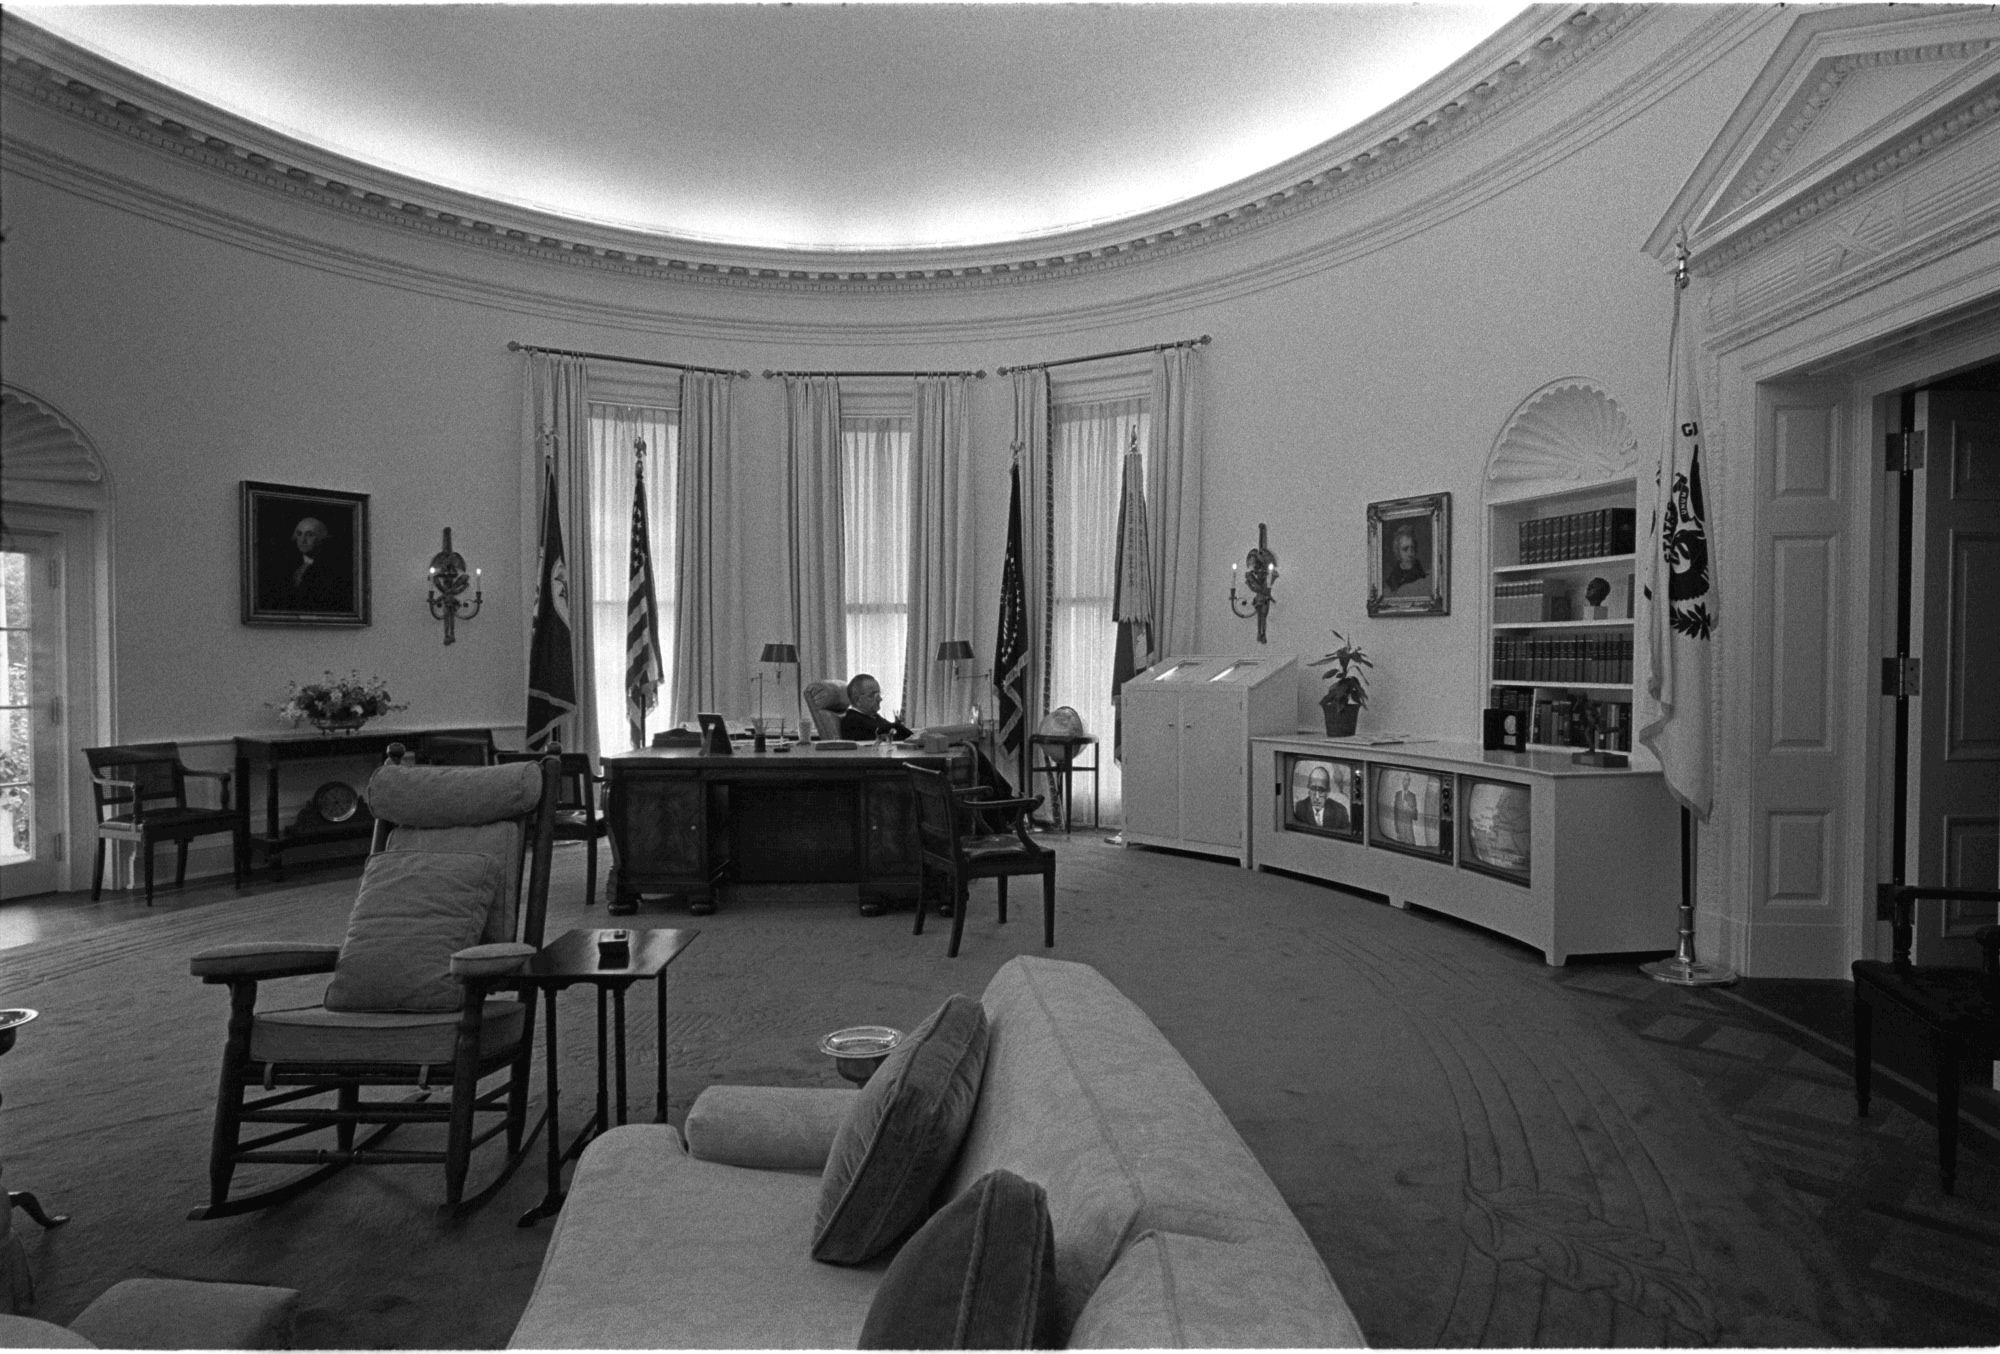 lbjs office president. Lbj Oval Office. In The Office Lbjs President